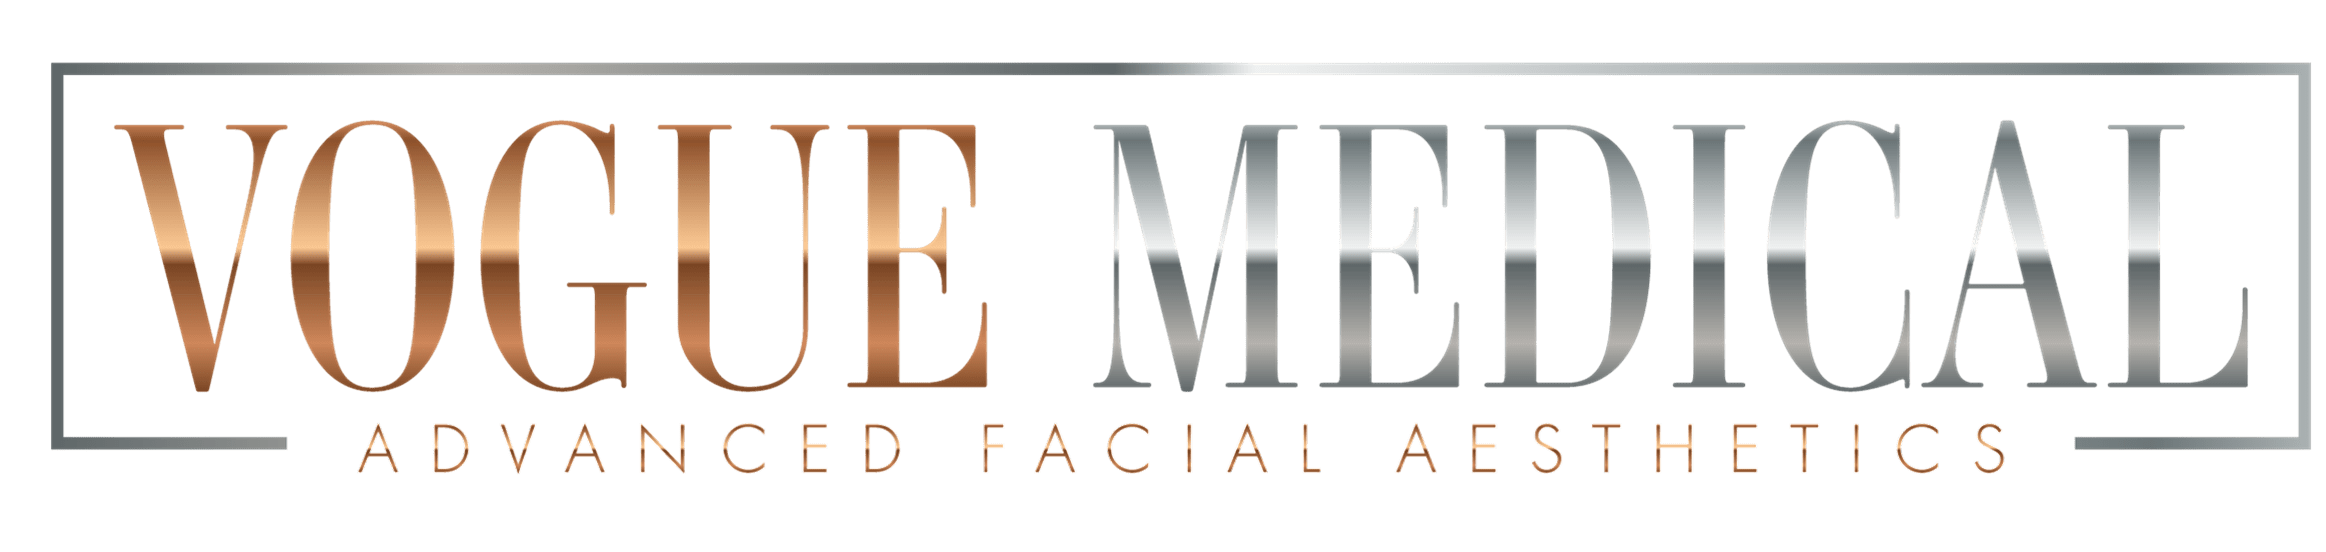 Vogue Medical Logo Dermal Filler and Botox antiwrinkle treatment specialists. Expert in lip fillers, cheek fillers, jawline jaw line fillers, chin fillers, and botox treatments